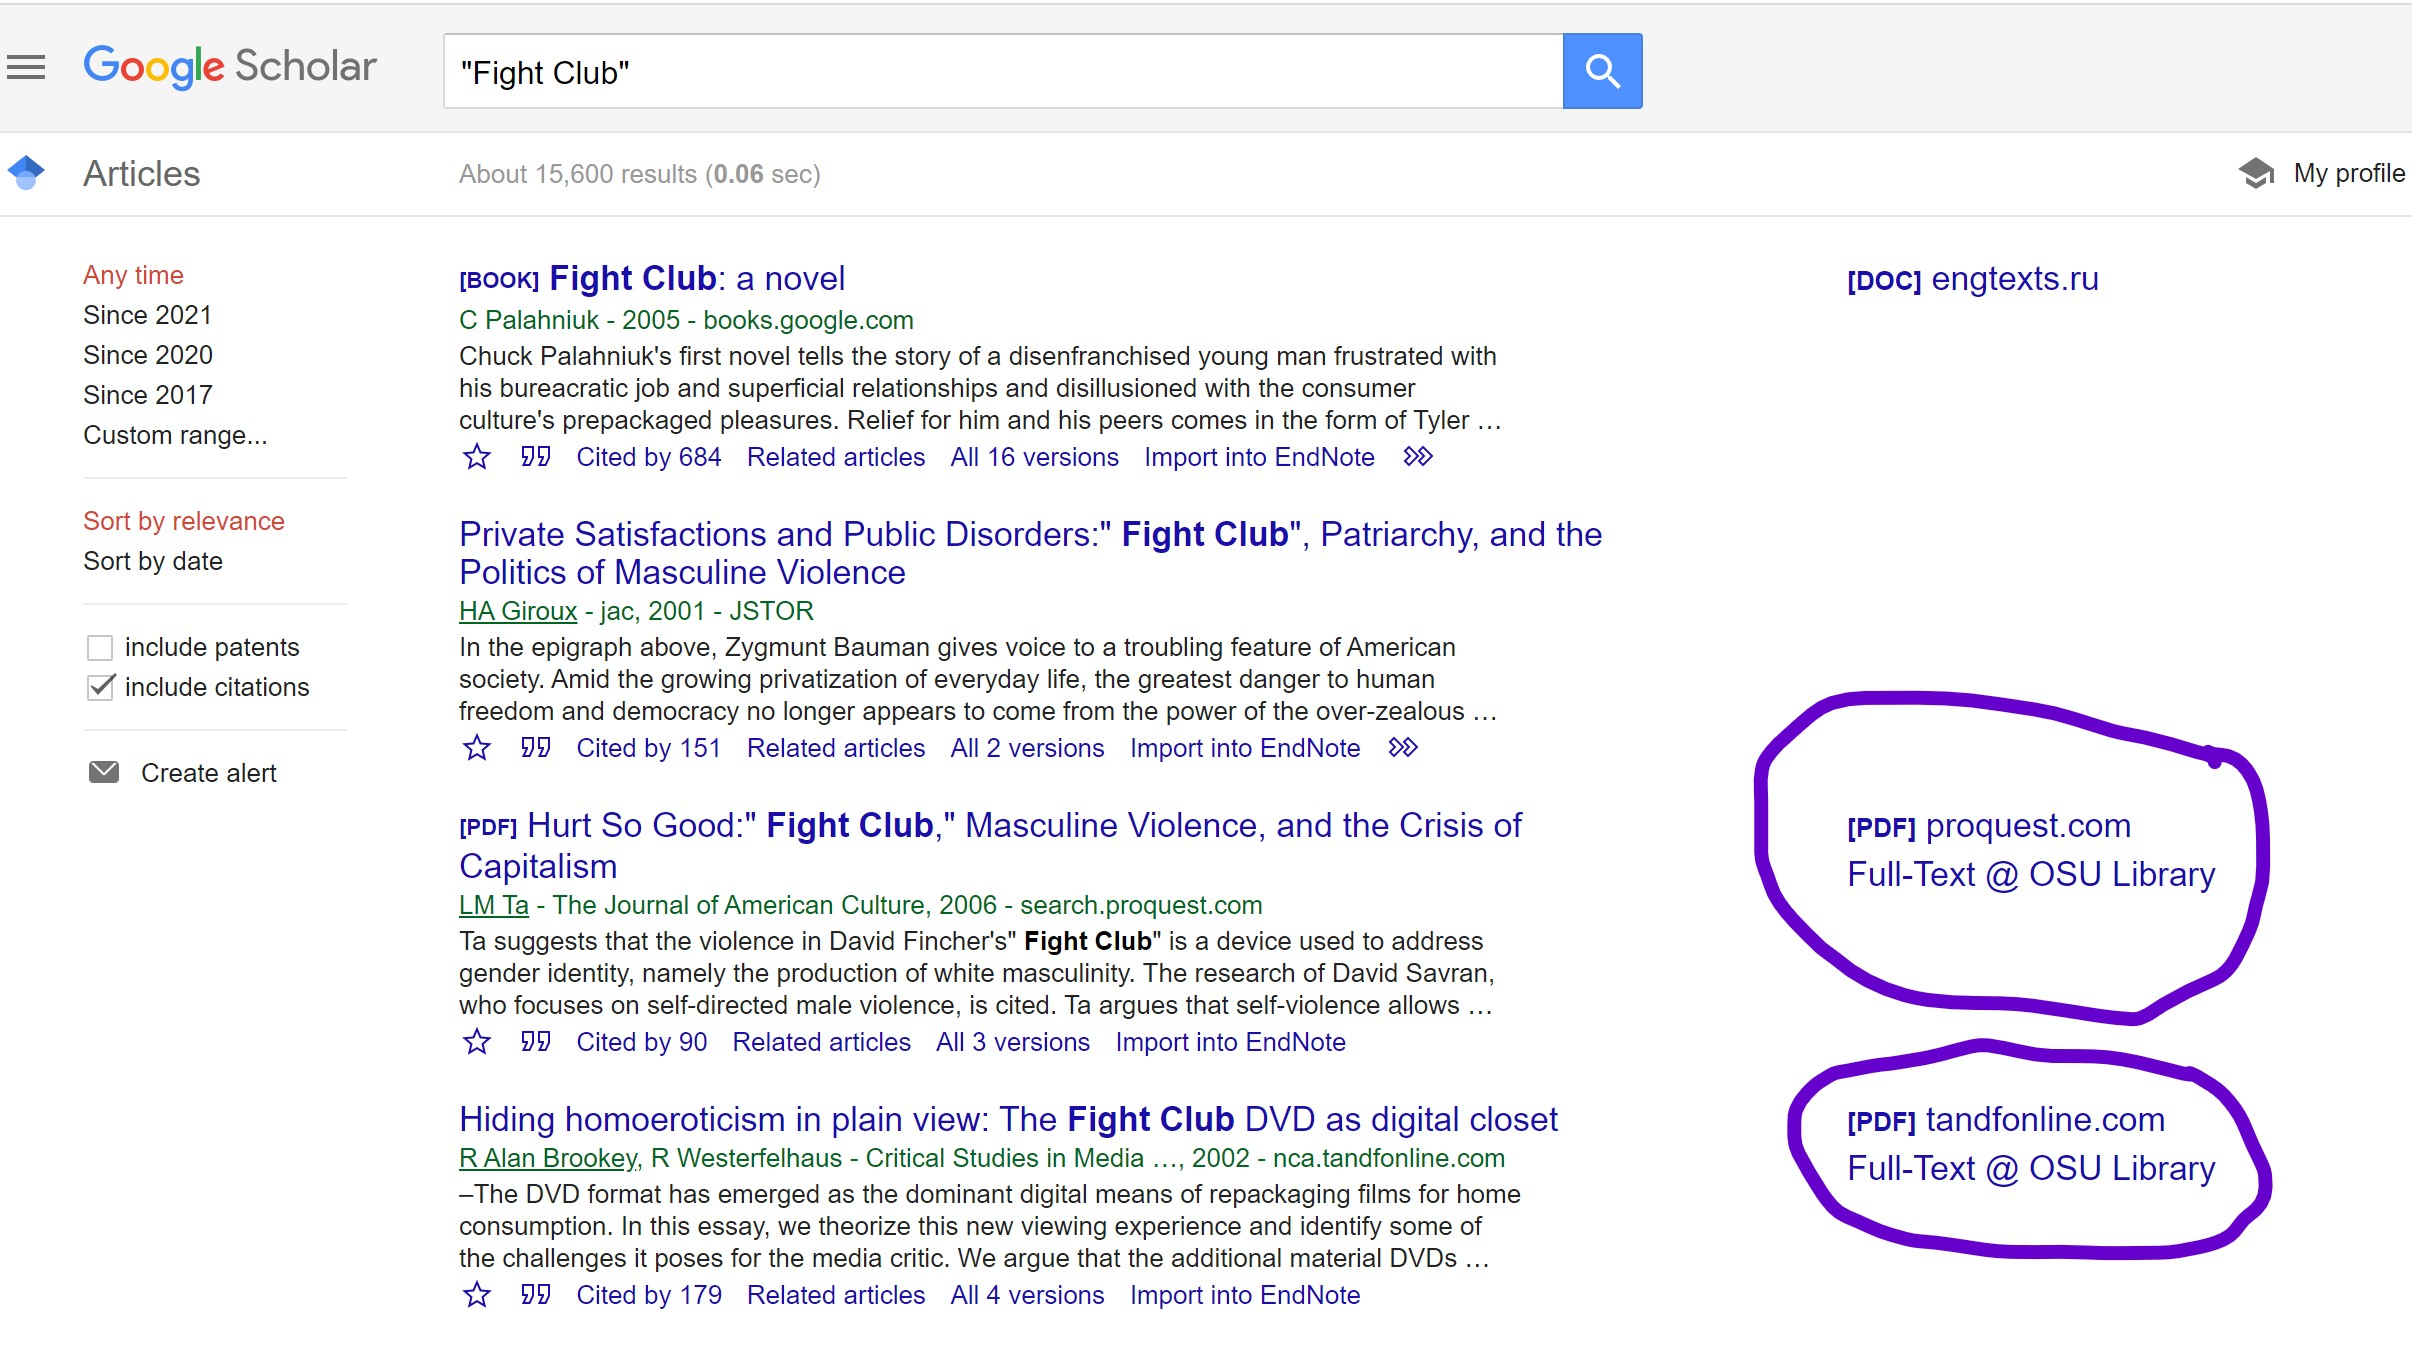 Search results for Fight Club, both the DVD and the book.